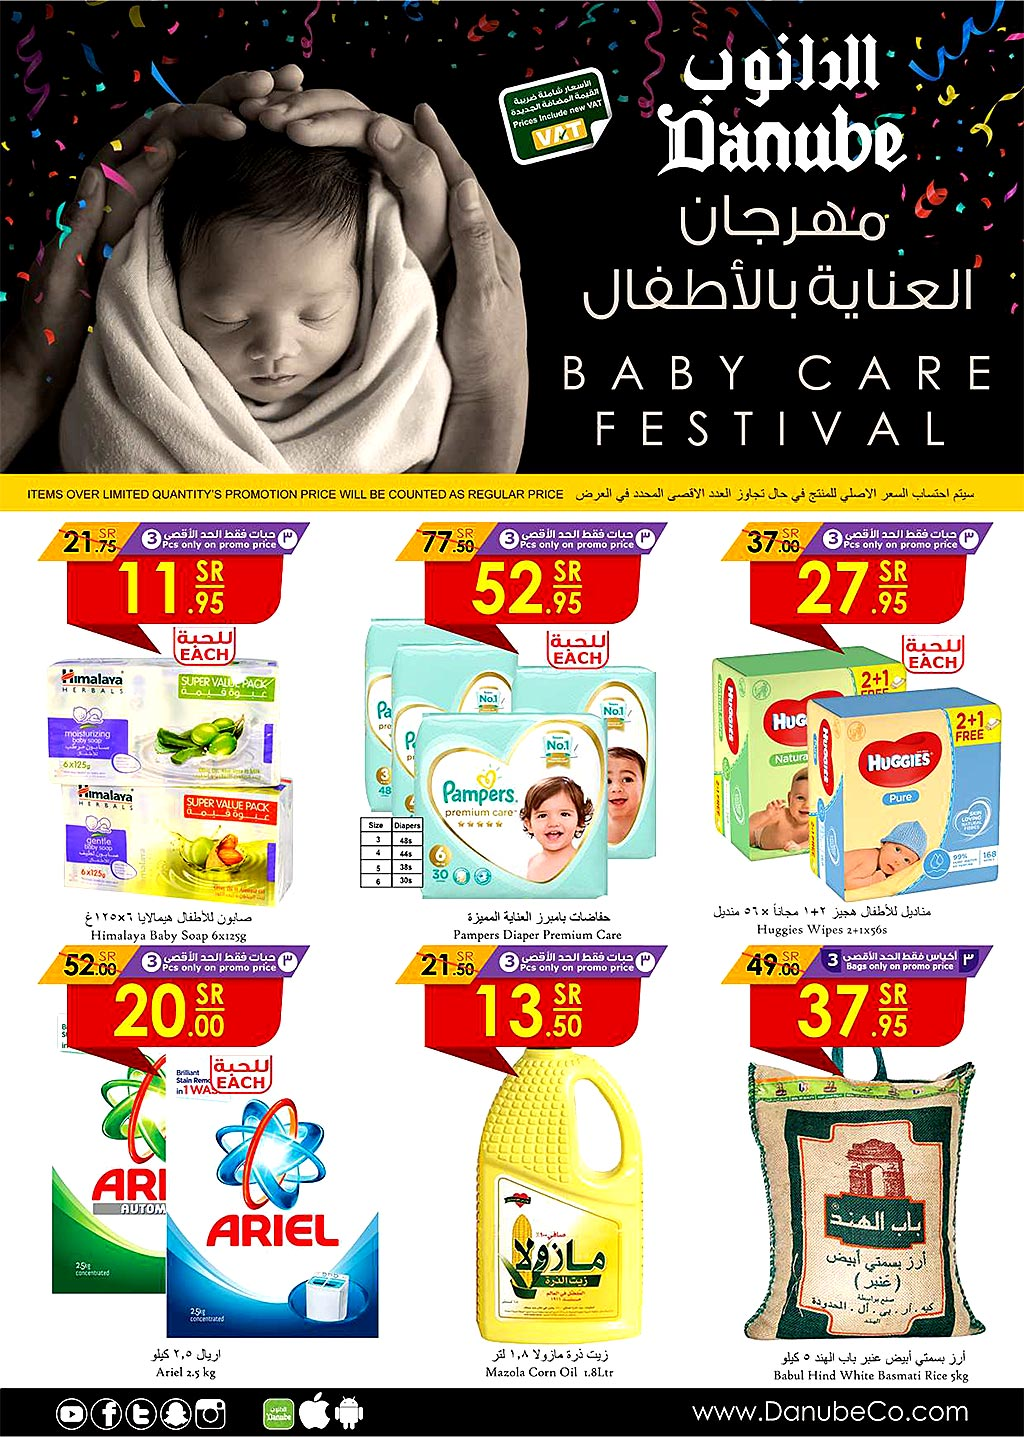 danube offers from 16sep to 22sep 2020 page number 1 عروض الدانوب من 16 سبتمبر حتى 22 سبتمبر 2020 صفحة رقم 1